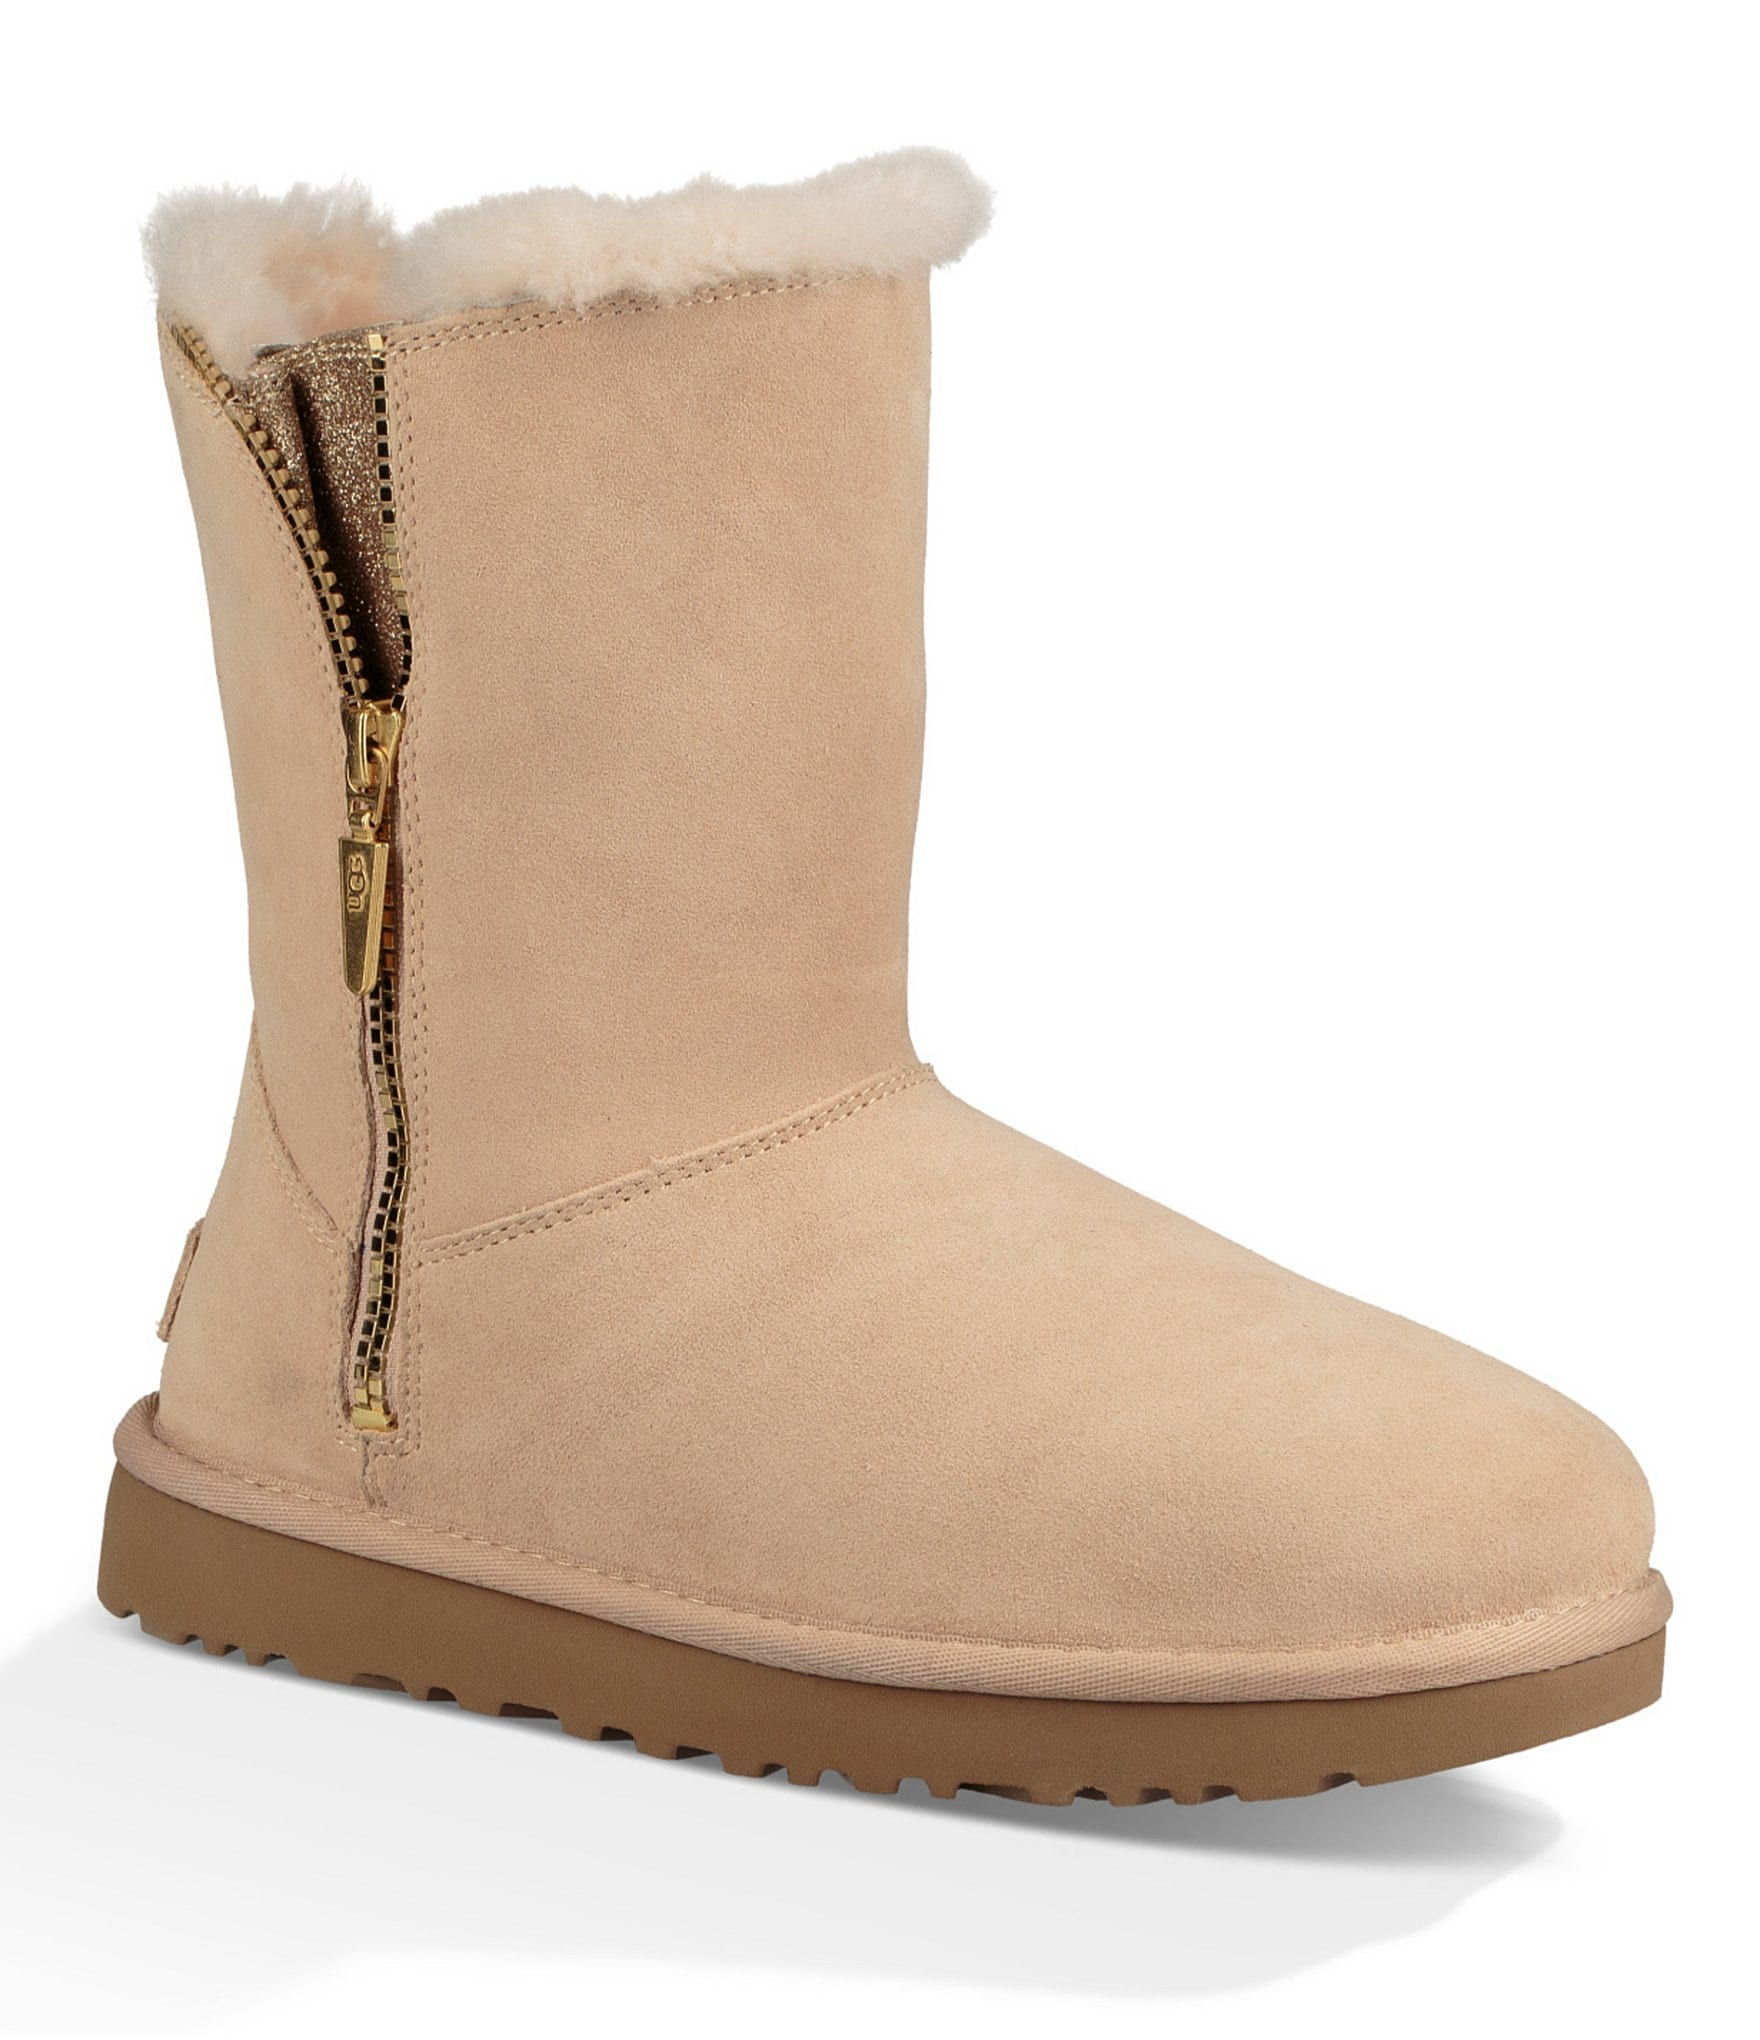 SOREL - Shop Women's, Men's & Kids Boots, Shoes and Shop direct from iantje.tk for the ugg boots dillards usa best deals on fabulous boots & apparel.